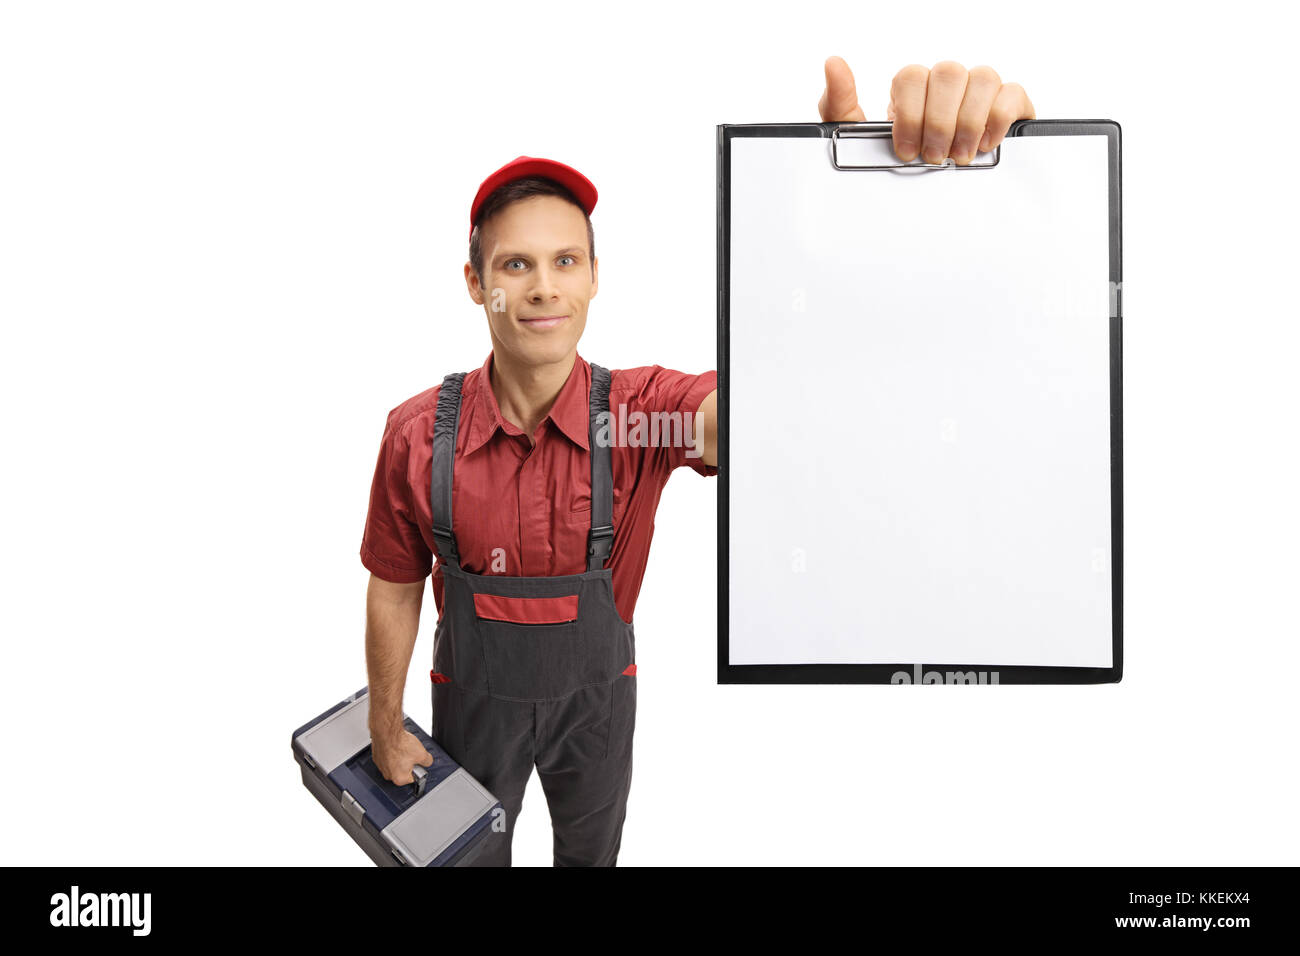 Serviceman showing a clipboard isolated on white background - Stock Image